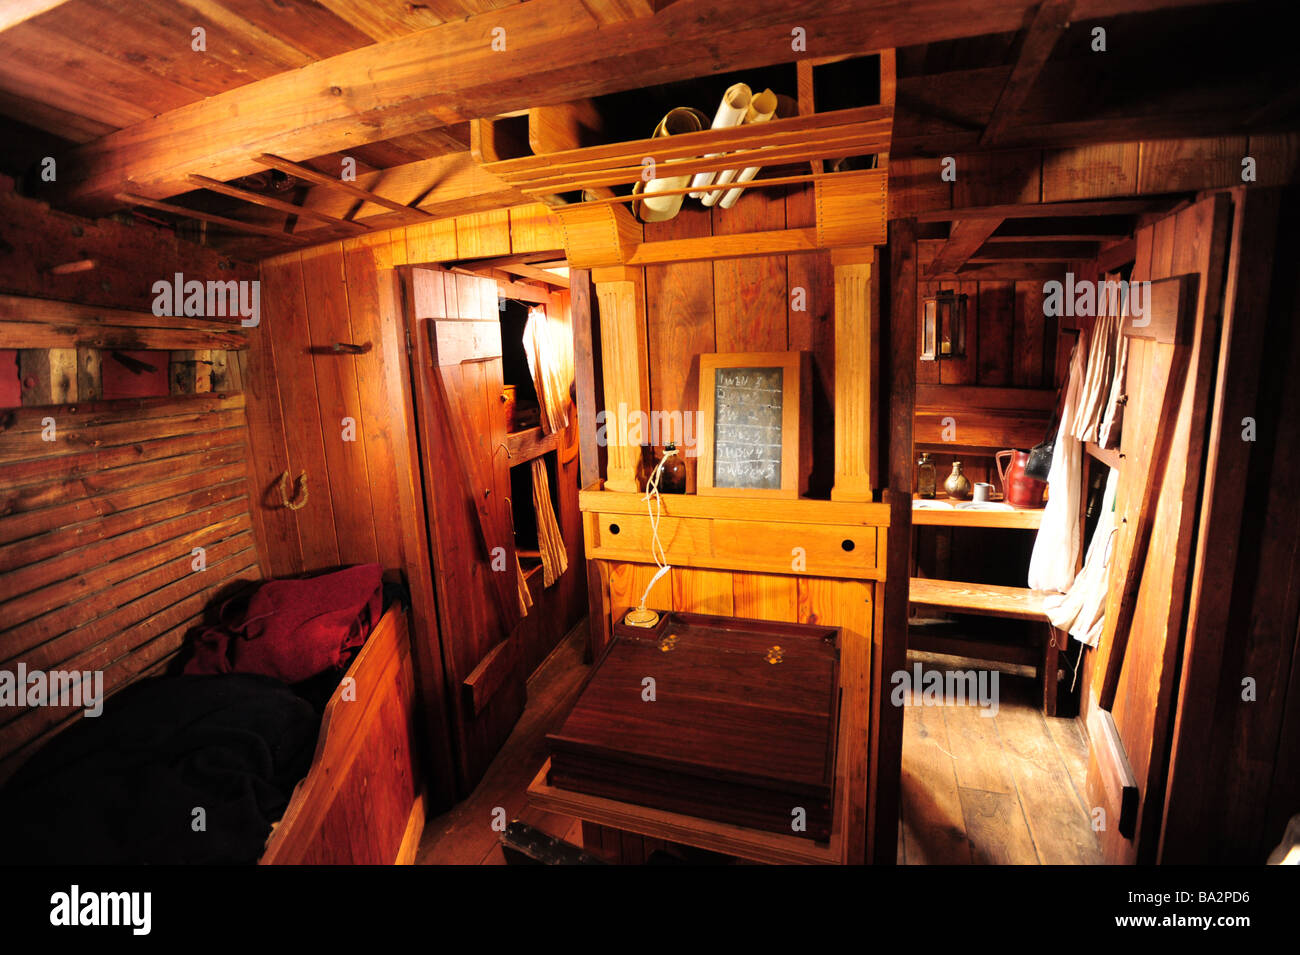 USA Maryland Historic St Marys City MD First Capitol Colonial Village Inside And Below Deck Of The Dove Wooden Ship